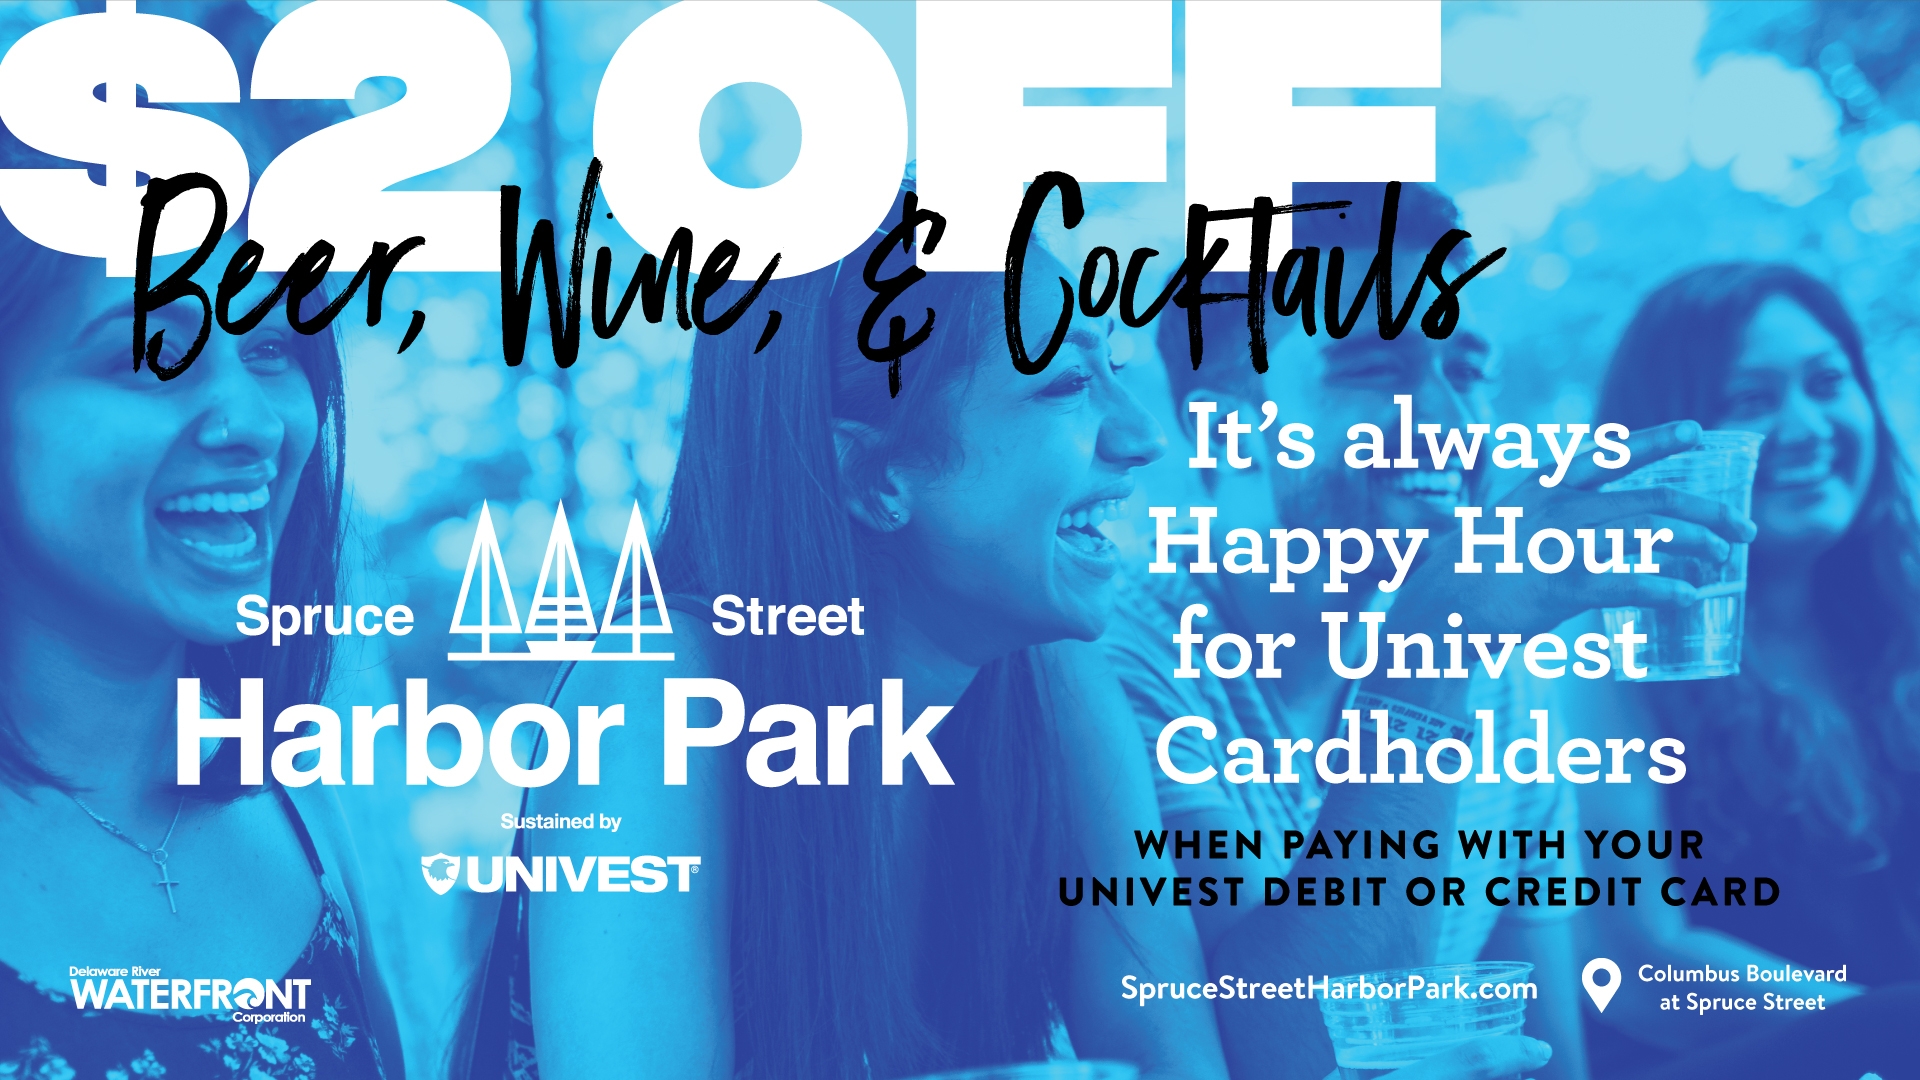 spruce street harbor park special 2 dollars off when you pay with your univest debit or credit card